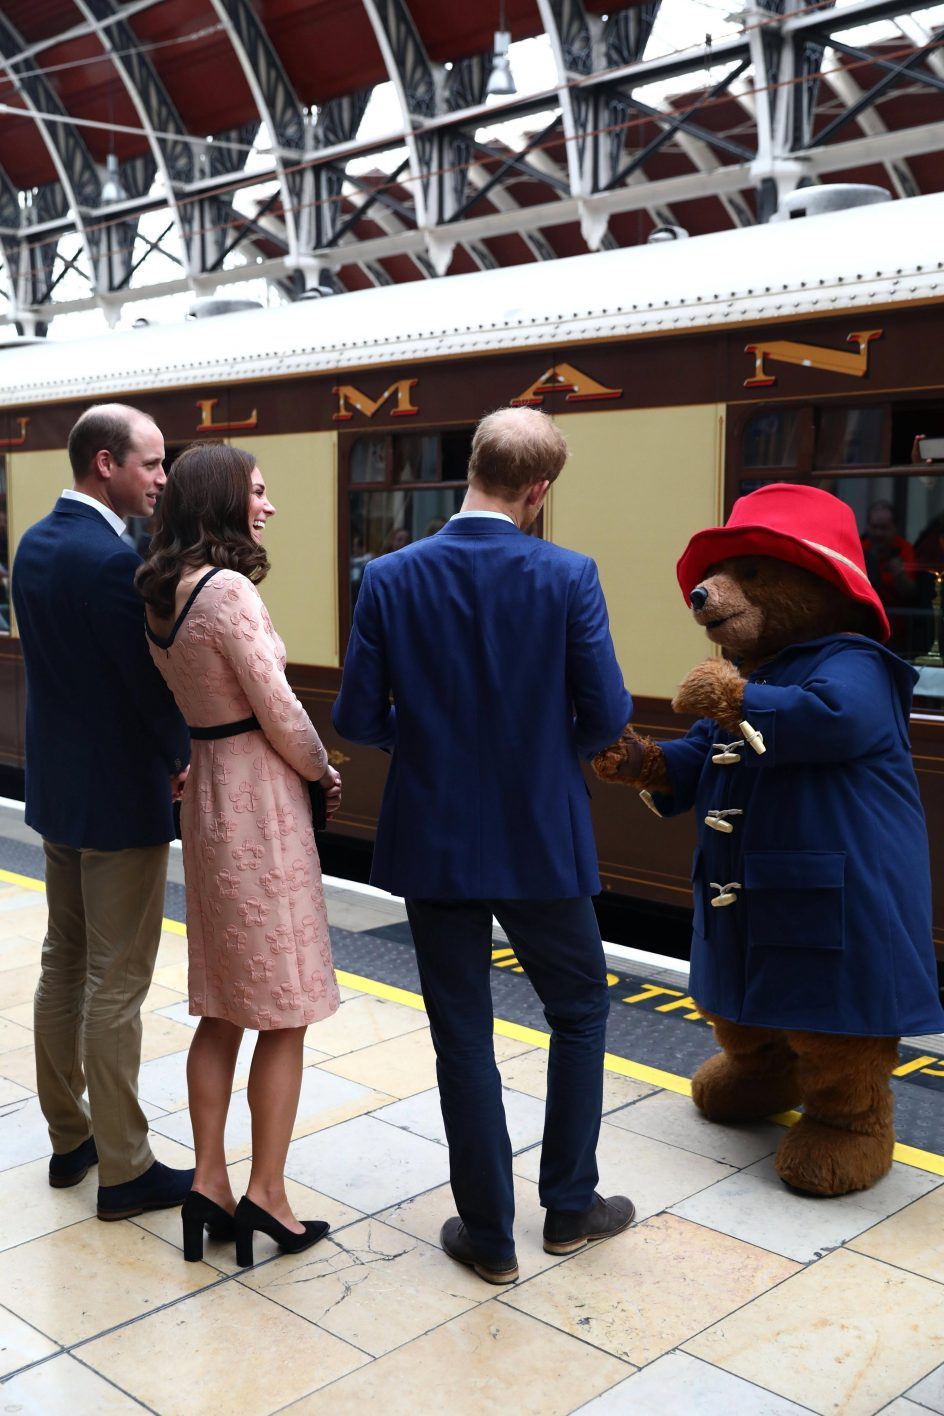 Los duques de Cambridge conocen al osito Paddington